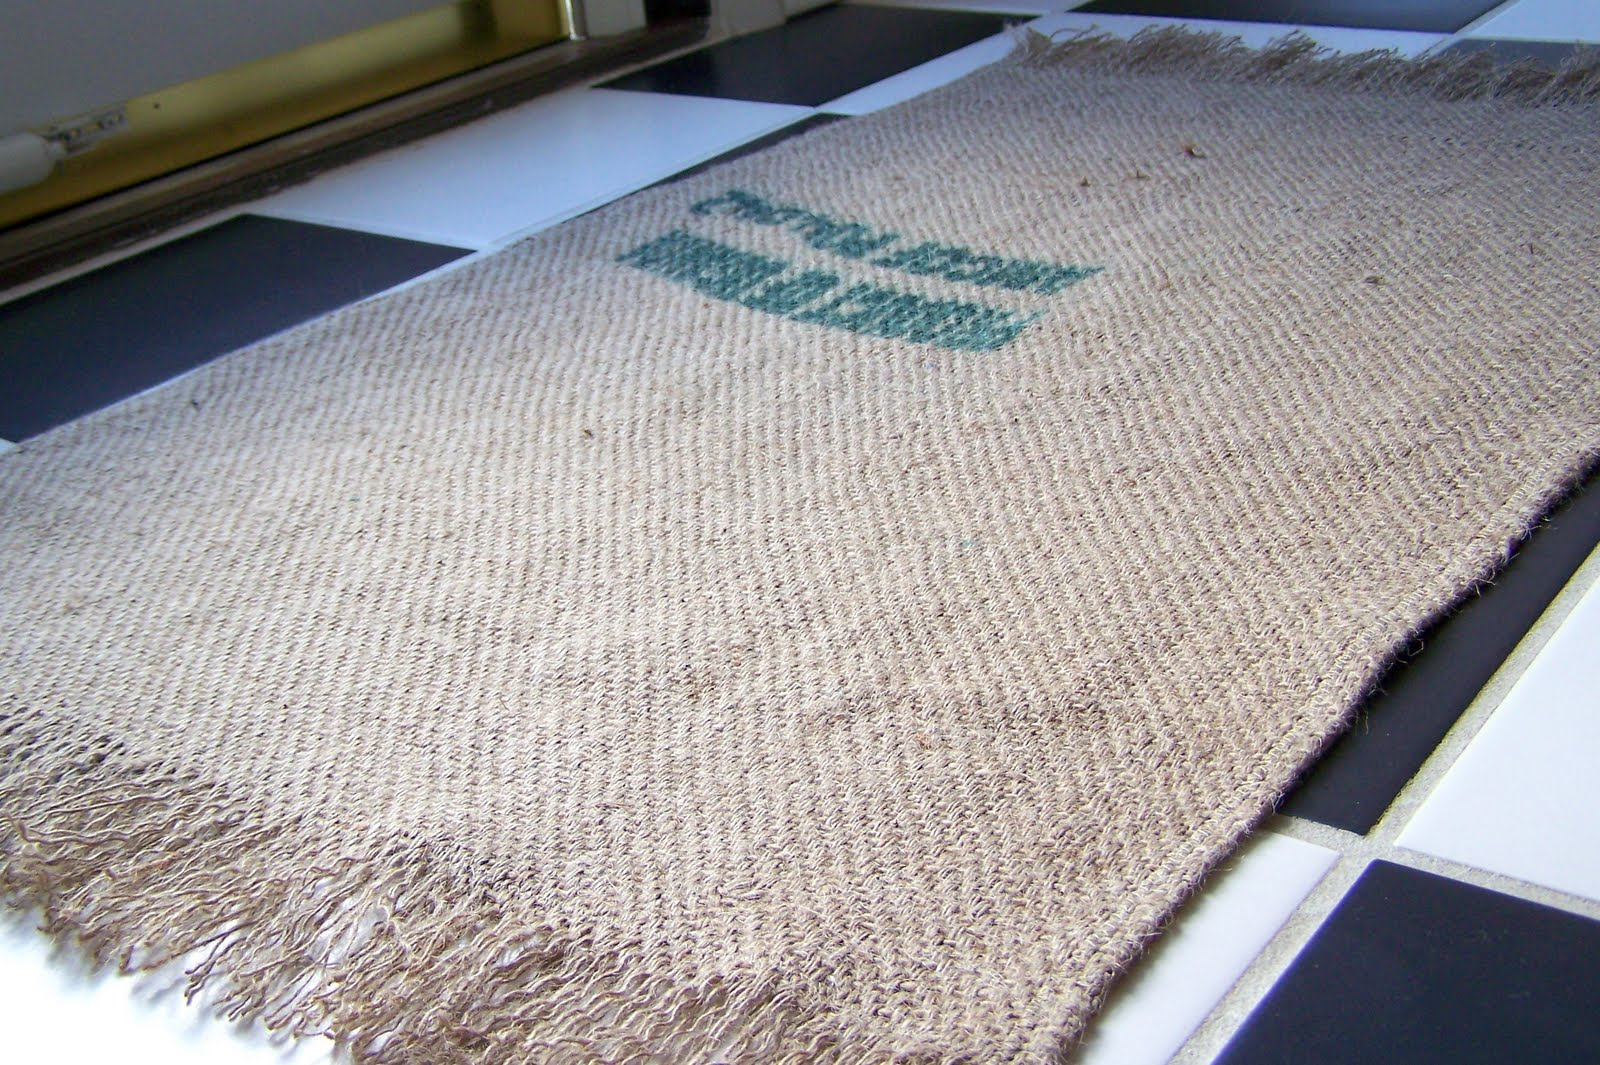 Making a rug out of carpet -  In Our Etsy Shops Visit Maiden Jane Or I Craft Beewisebags To See The Selection We Have Or Pick Out A Rug That You Like And I Ll Make One To Order